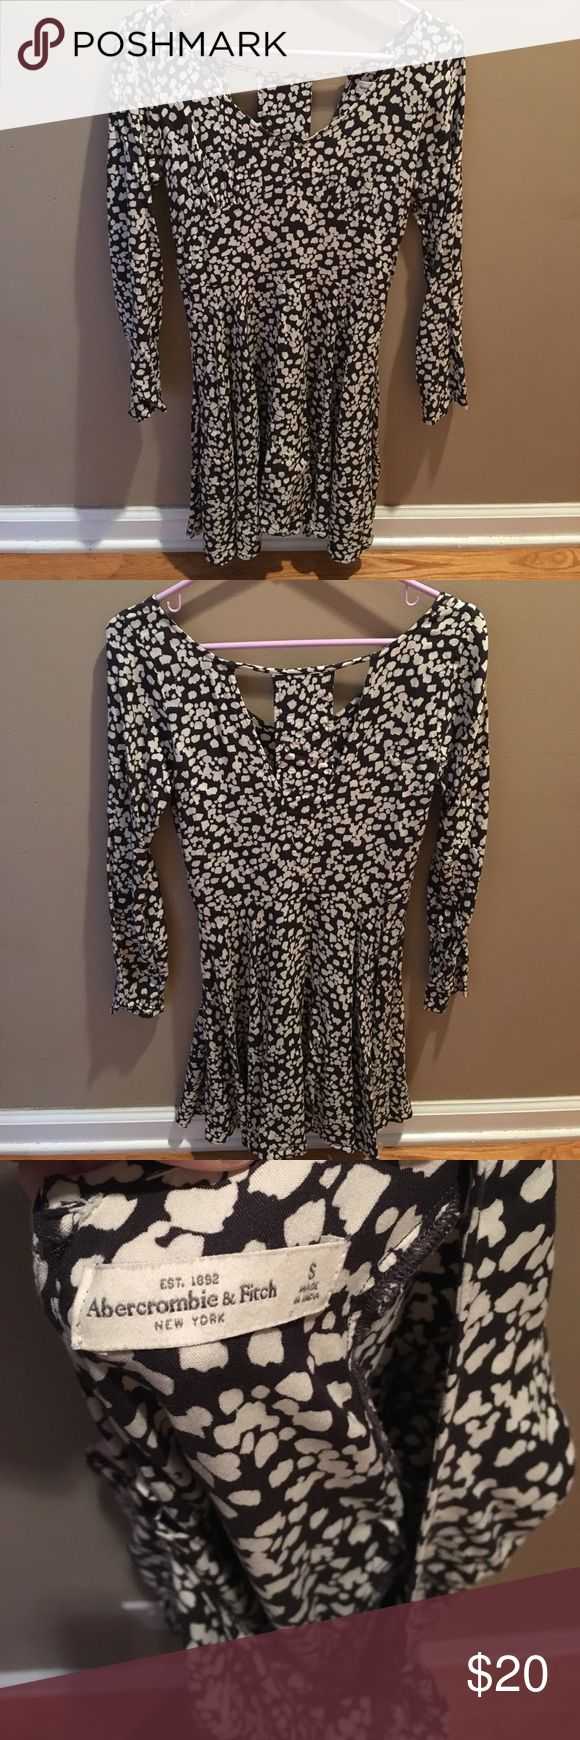 Abercrombie dress Great condition! Zips on the side! Has 2 slits on the back! Low cut! More of a creamy color! Abercrombie & Fitch Dresses Long Sleeve